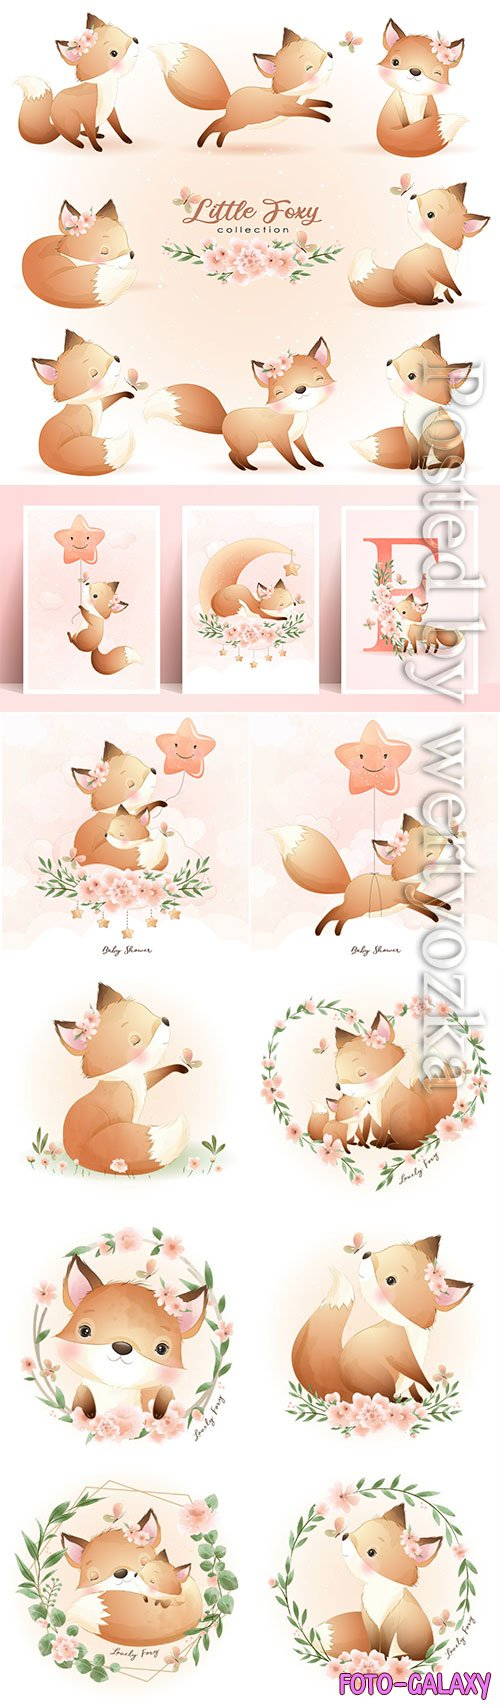 Cute doodle foxy poses with floral illustration premium vector